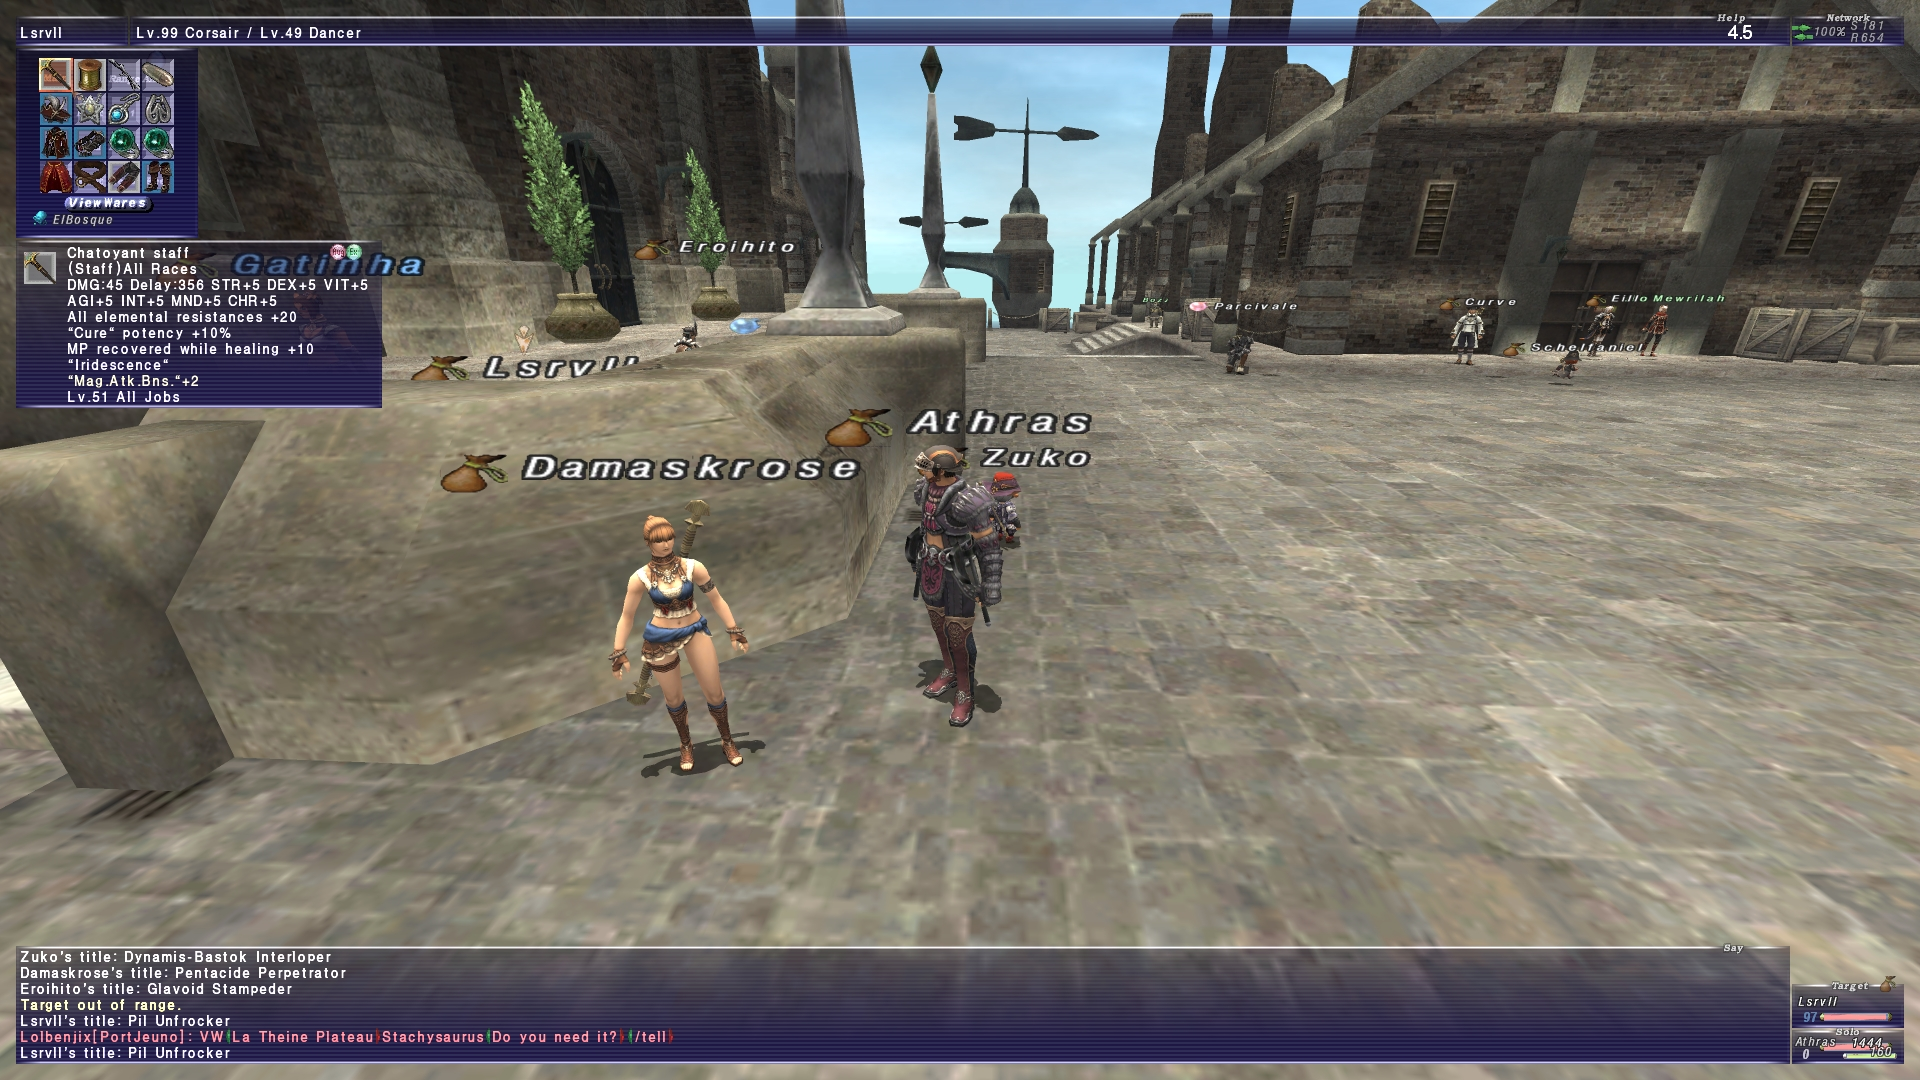 athas ffxi augment with stone after shit your breaking ended posted whats augments nekodance overshooting wiki magic attack bonus decided skirmish show augmented items staff post went today lucky